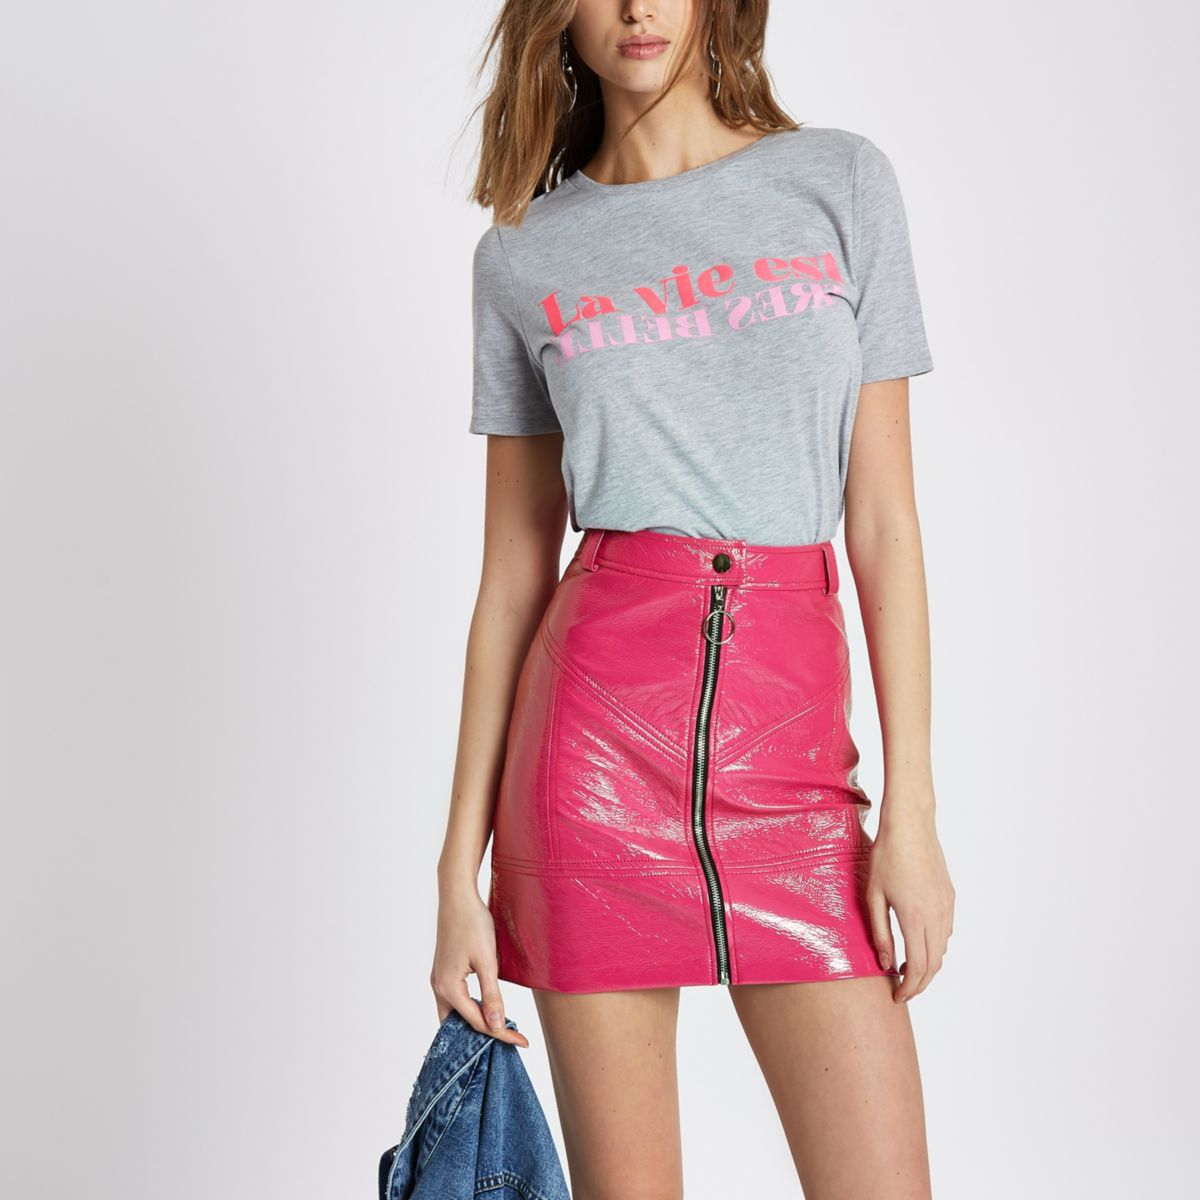 Pink mini skirt remarkable, and